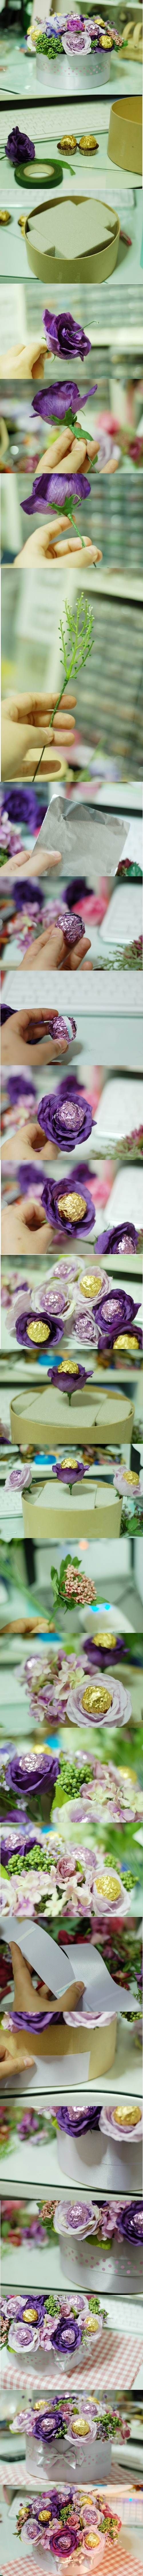 DIY Valentine's Day Chocolate Flower Bouquet | iCreativeIdeas.com LIKE Us on Facebook ==> https://www.facebook.com/icreativeideas